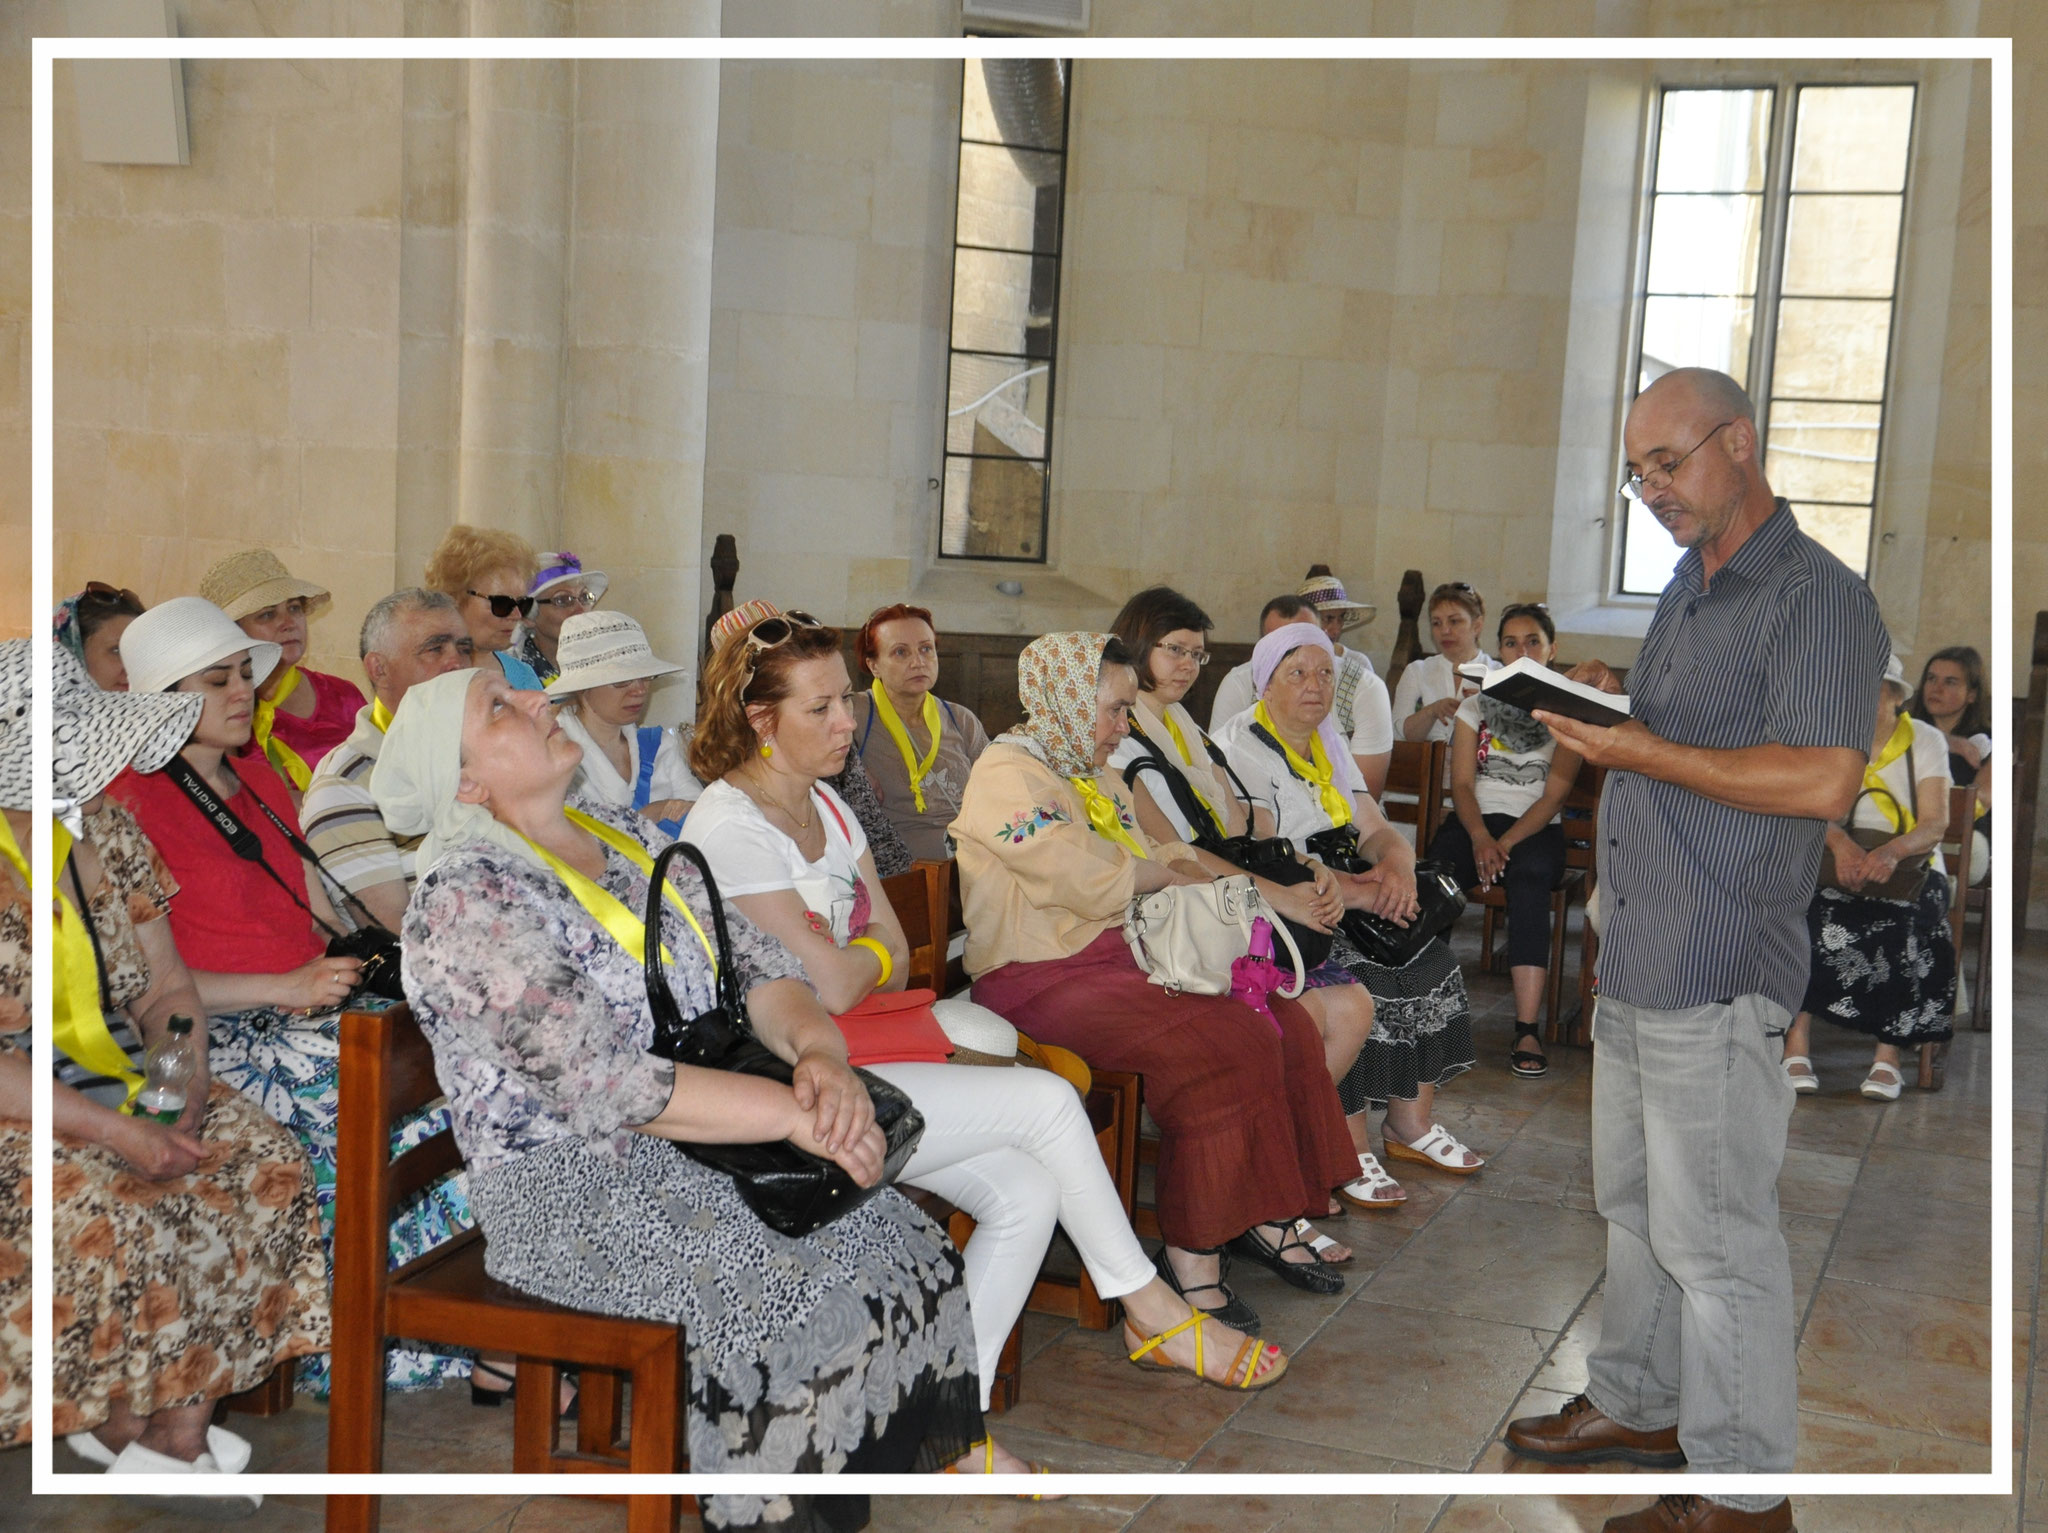 Reading the Holy Scripture with the group from Belarus, 2013